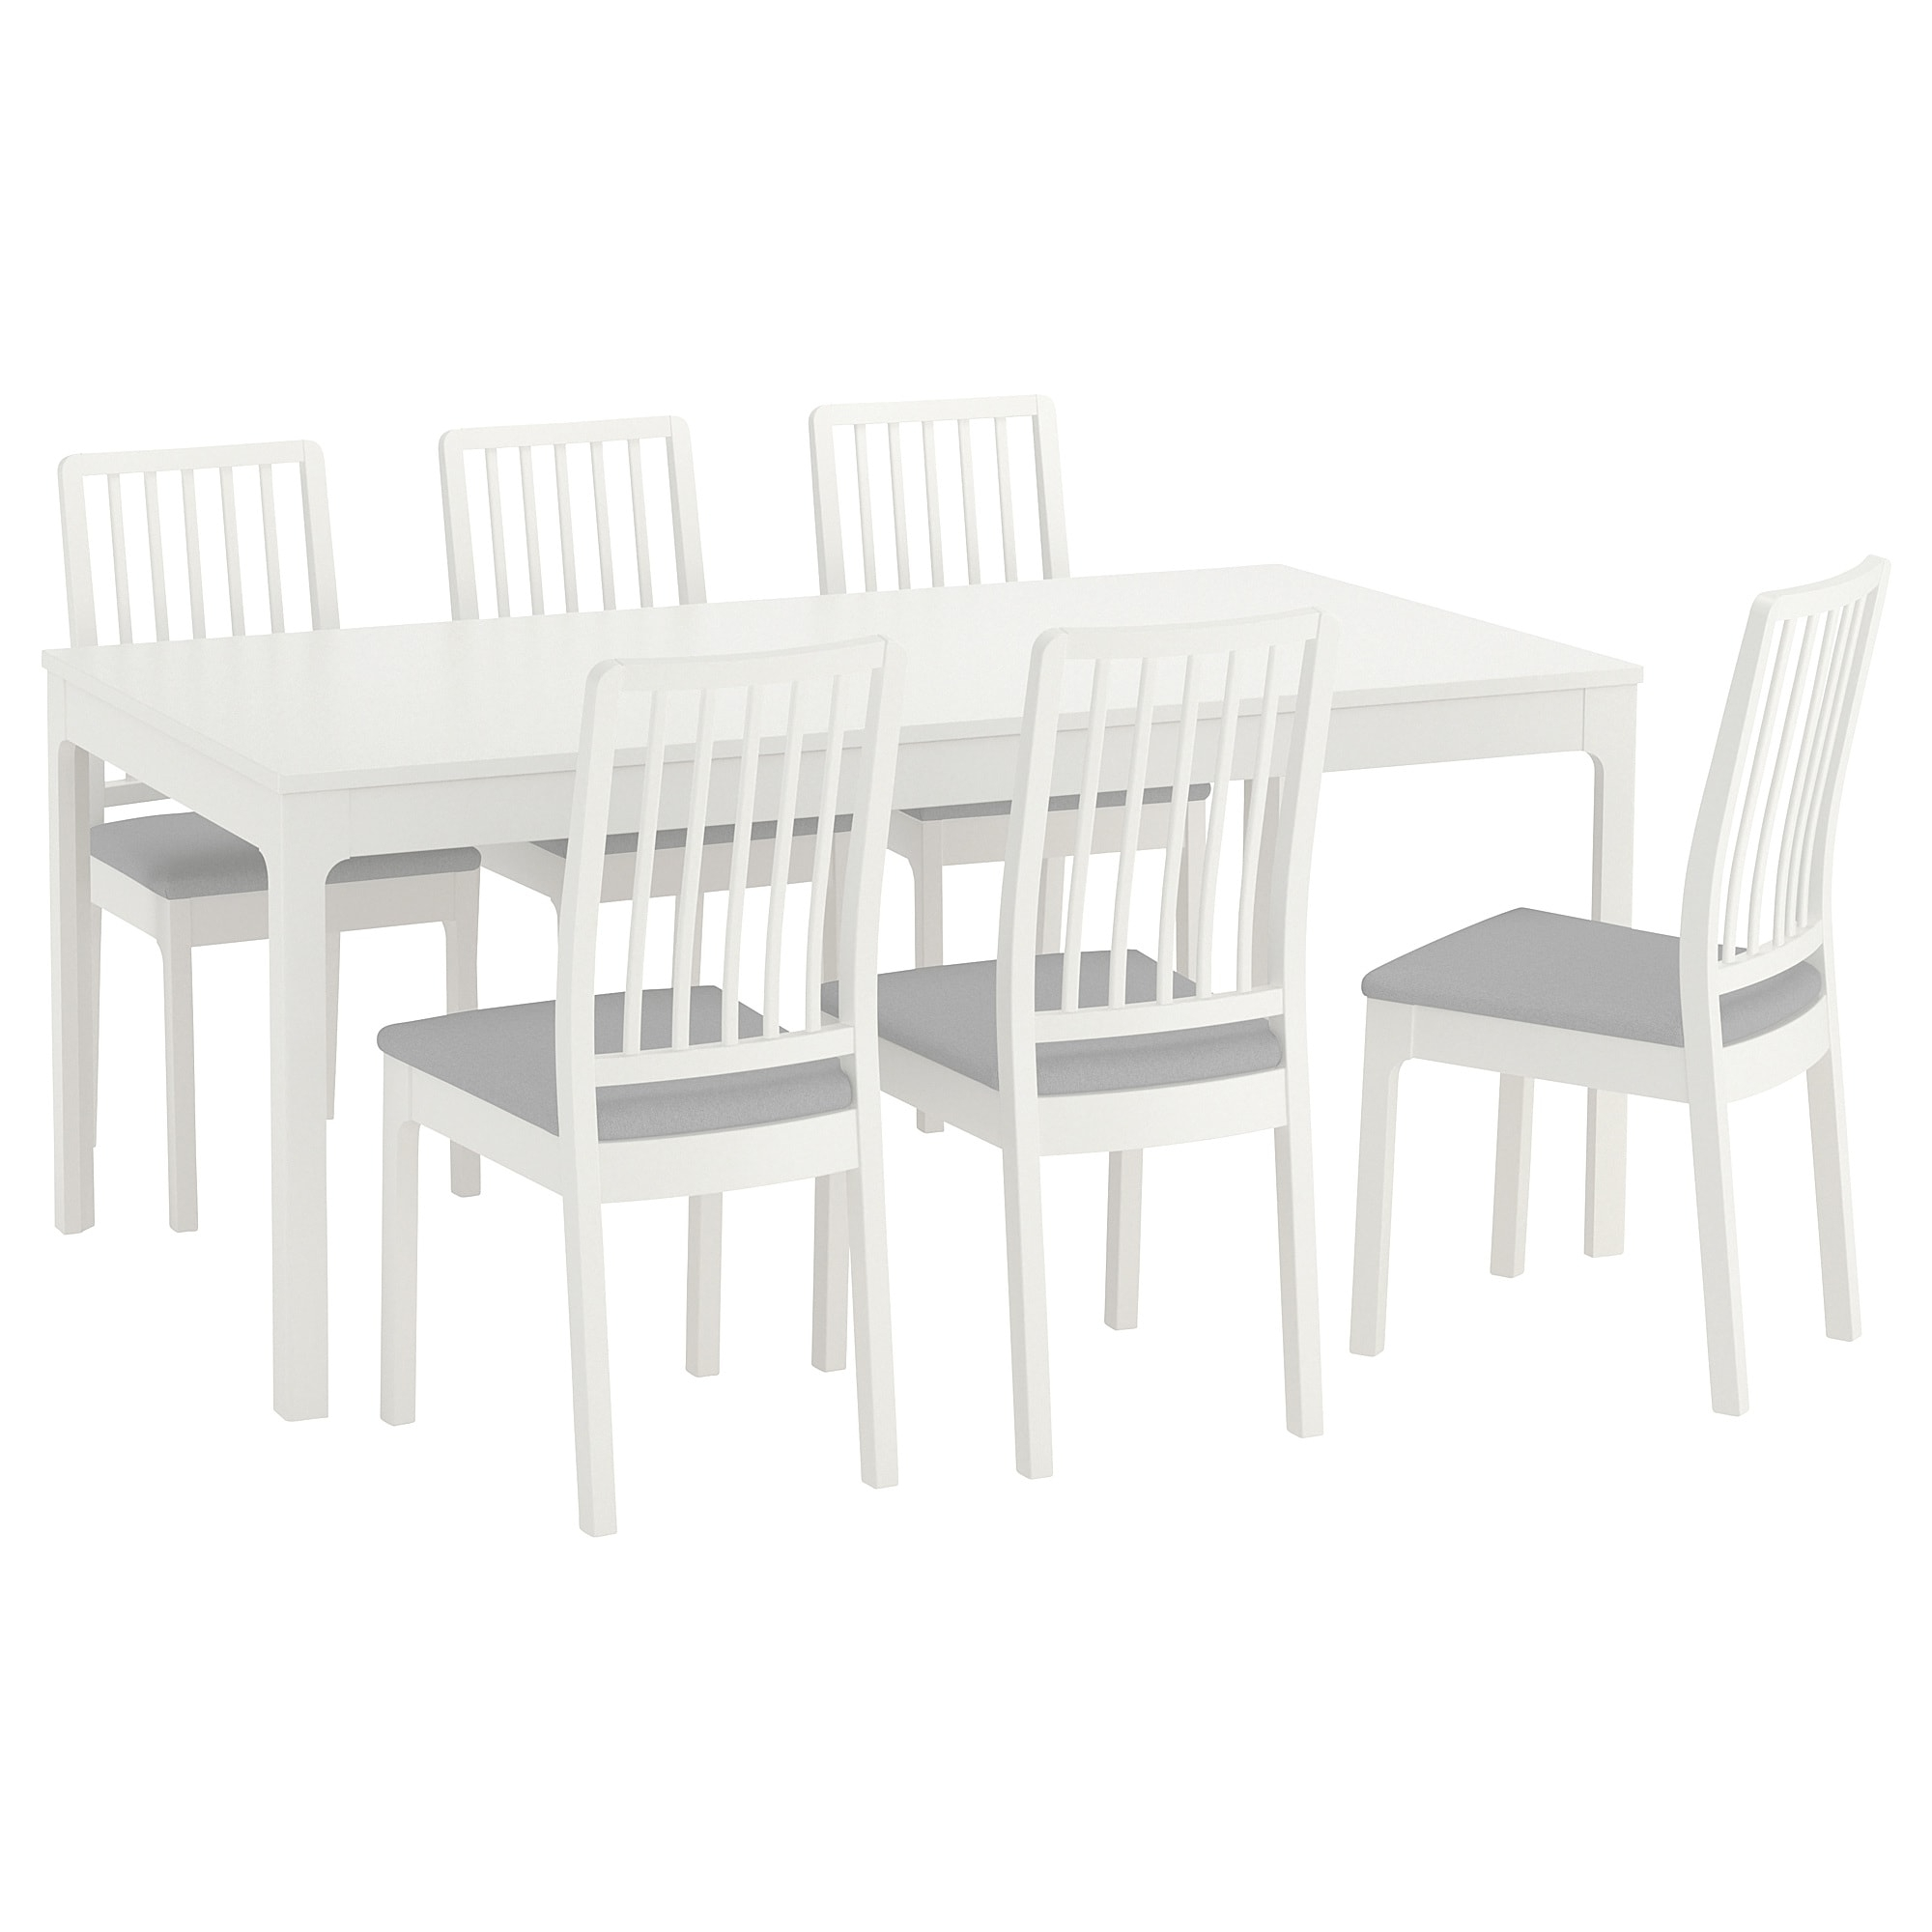 Helms 6 Piece Rectangle Dining Sets With Well Known Chairs, Stools & Benches – Ikea (Gallery 19 of 25)